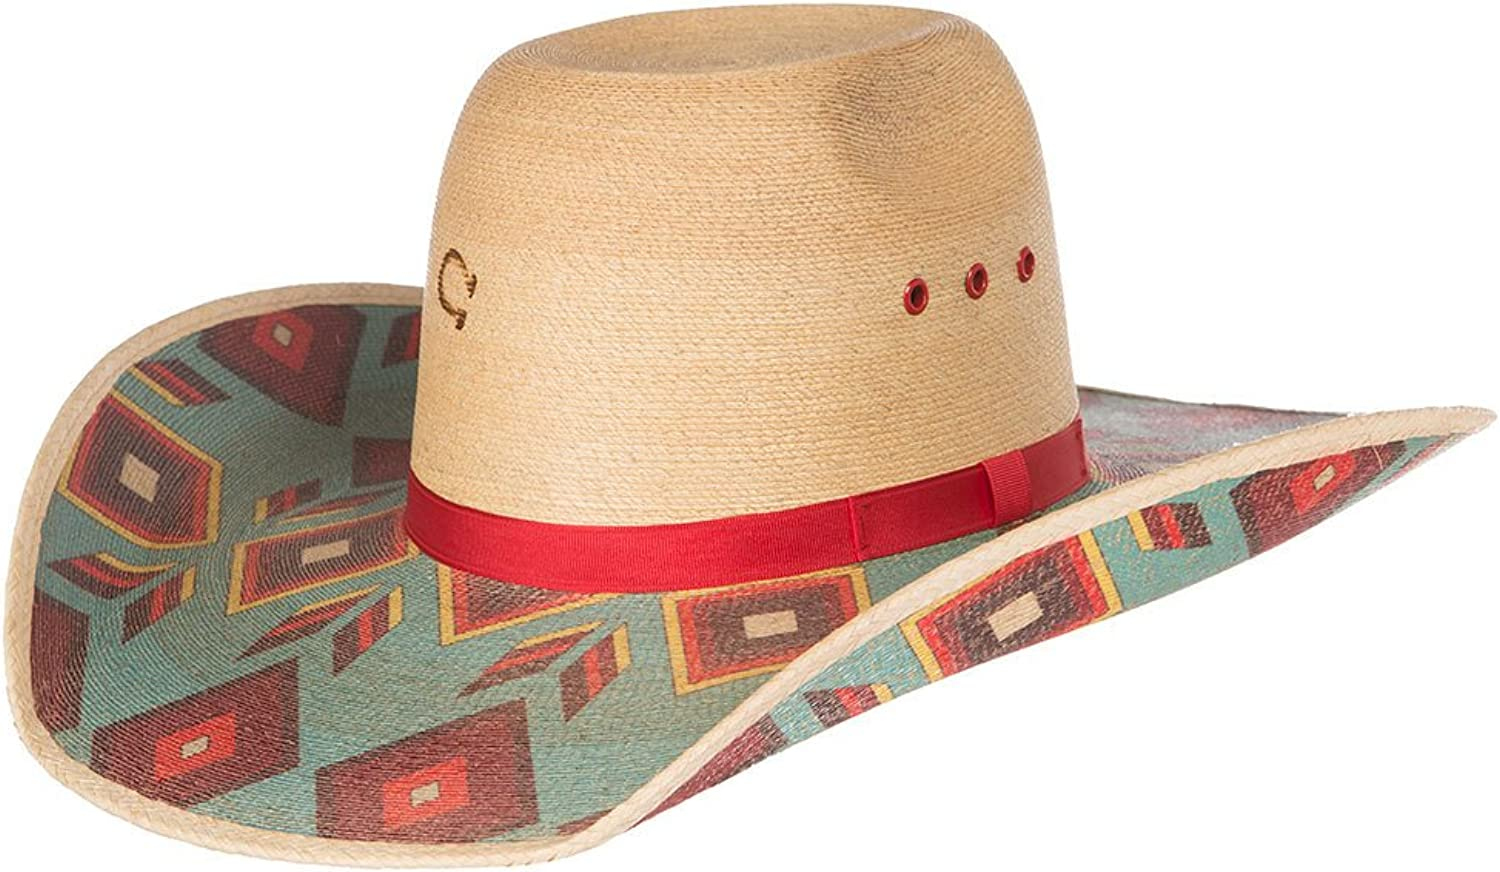 Charlie 1 Horse Cowgirl Outlaw Palm Leaf Ladies Cowboy Hat